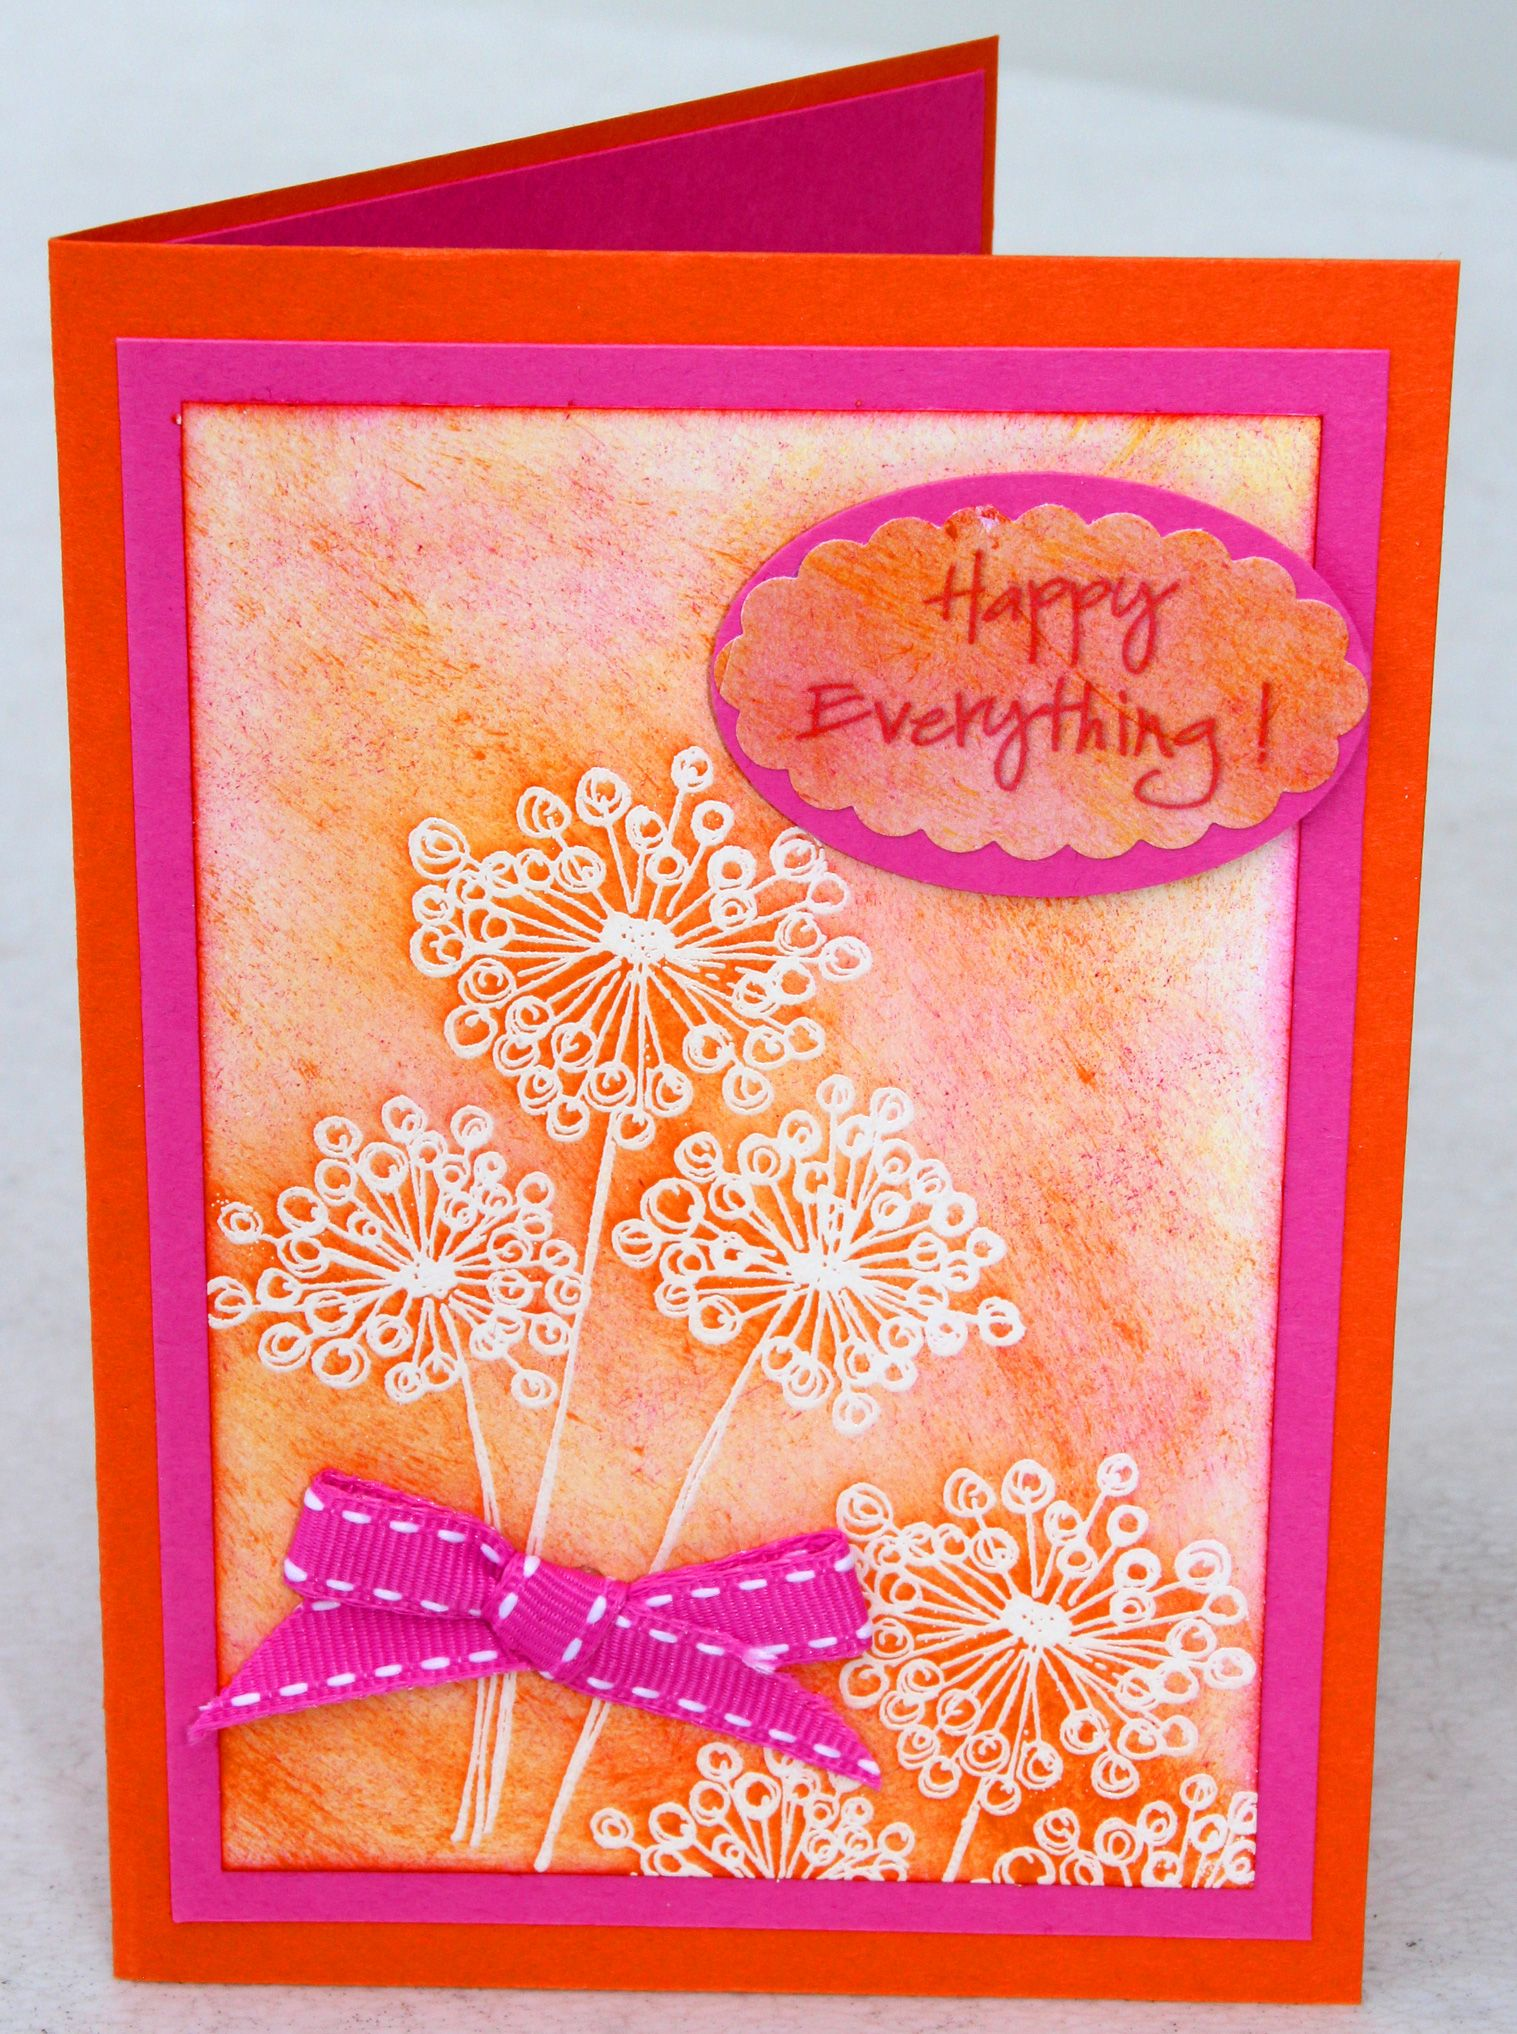 Greeting card using su cardstock and penny black rubber stamp greeting card using su cardstock and penny black rubber stamp m4hsunfo